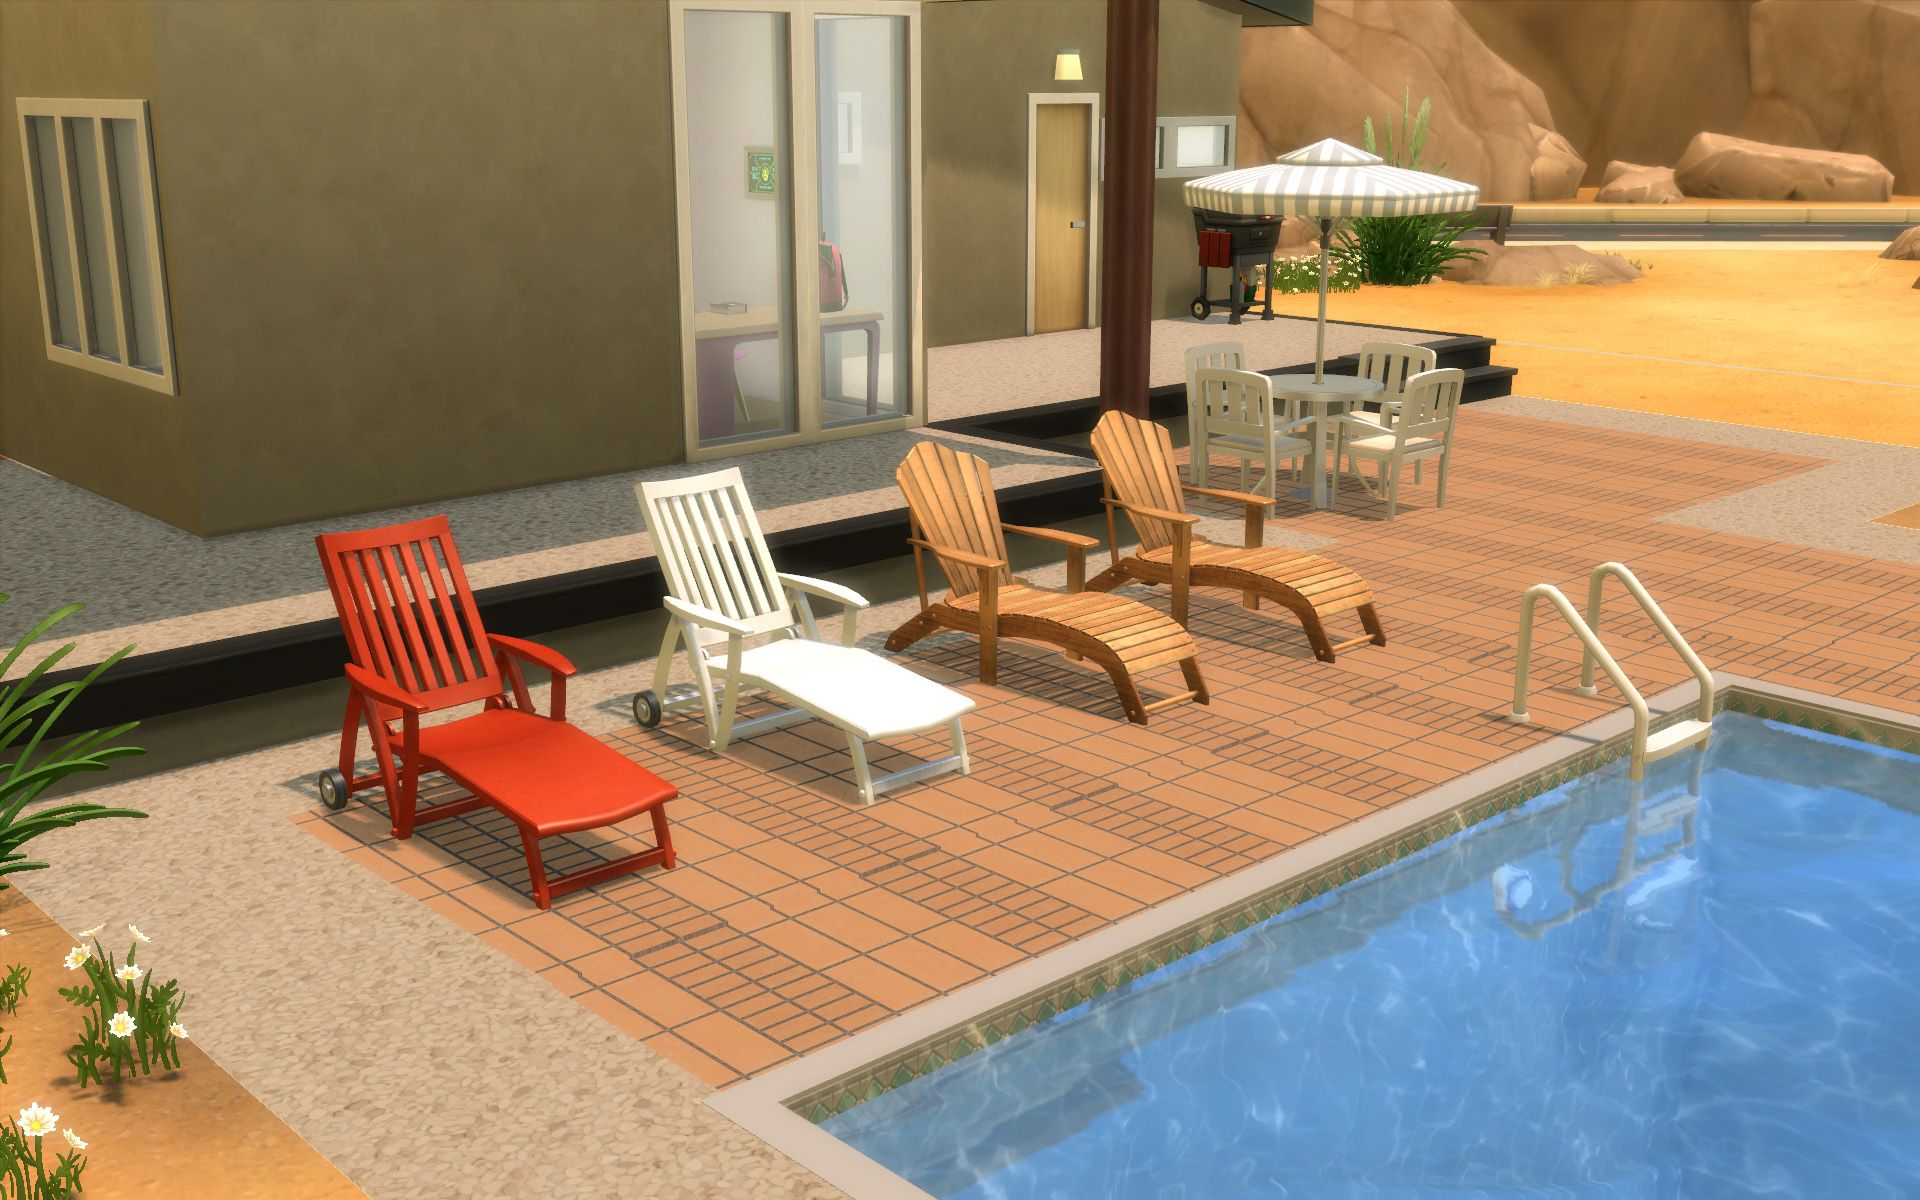 The Sims 4 LOolyharb1 2t4 Pool side Lounge chairs